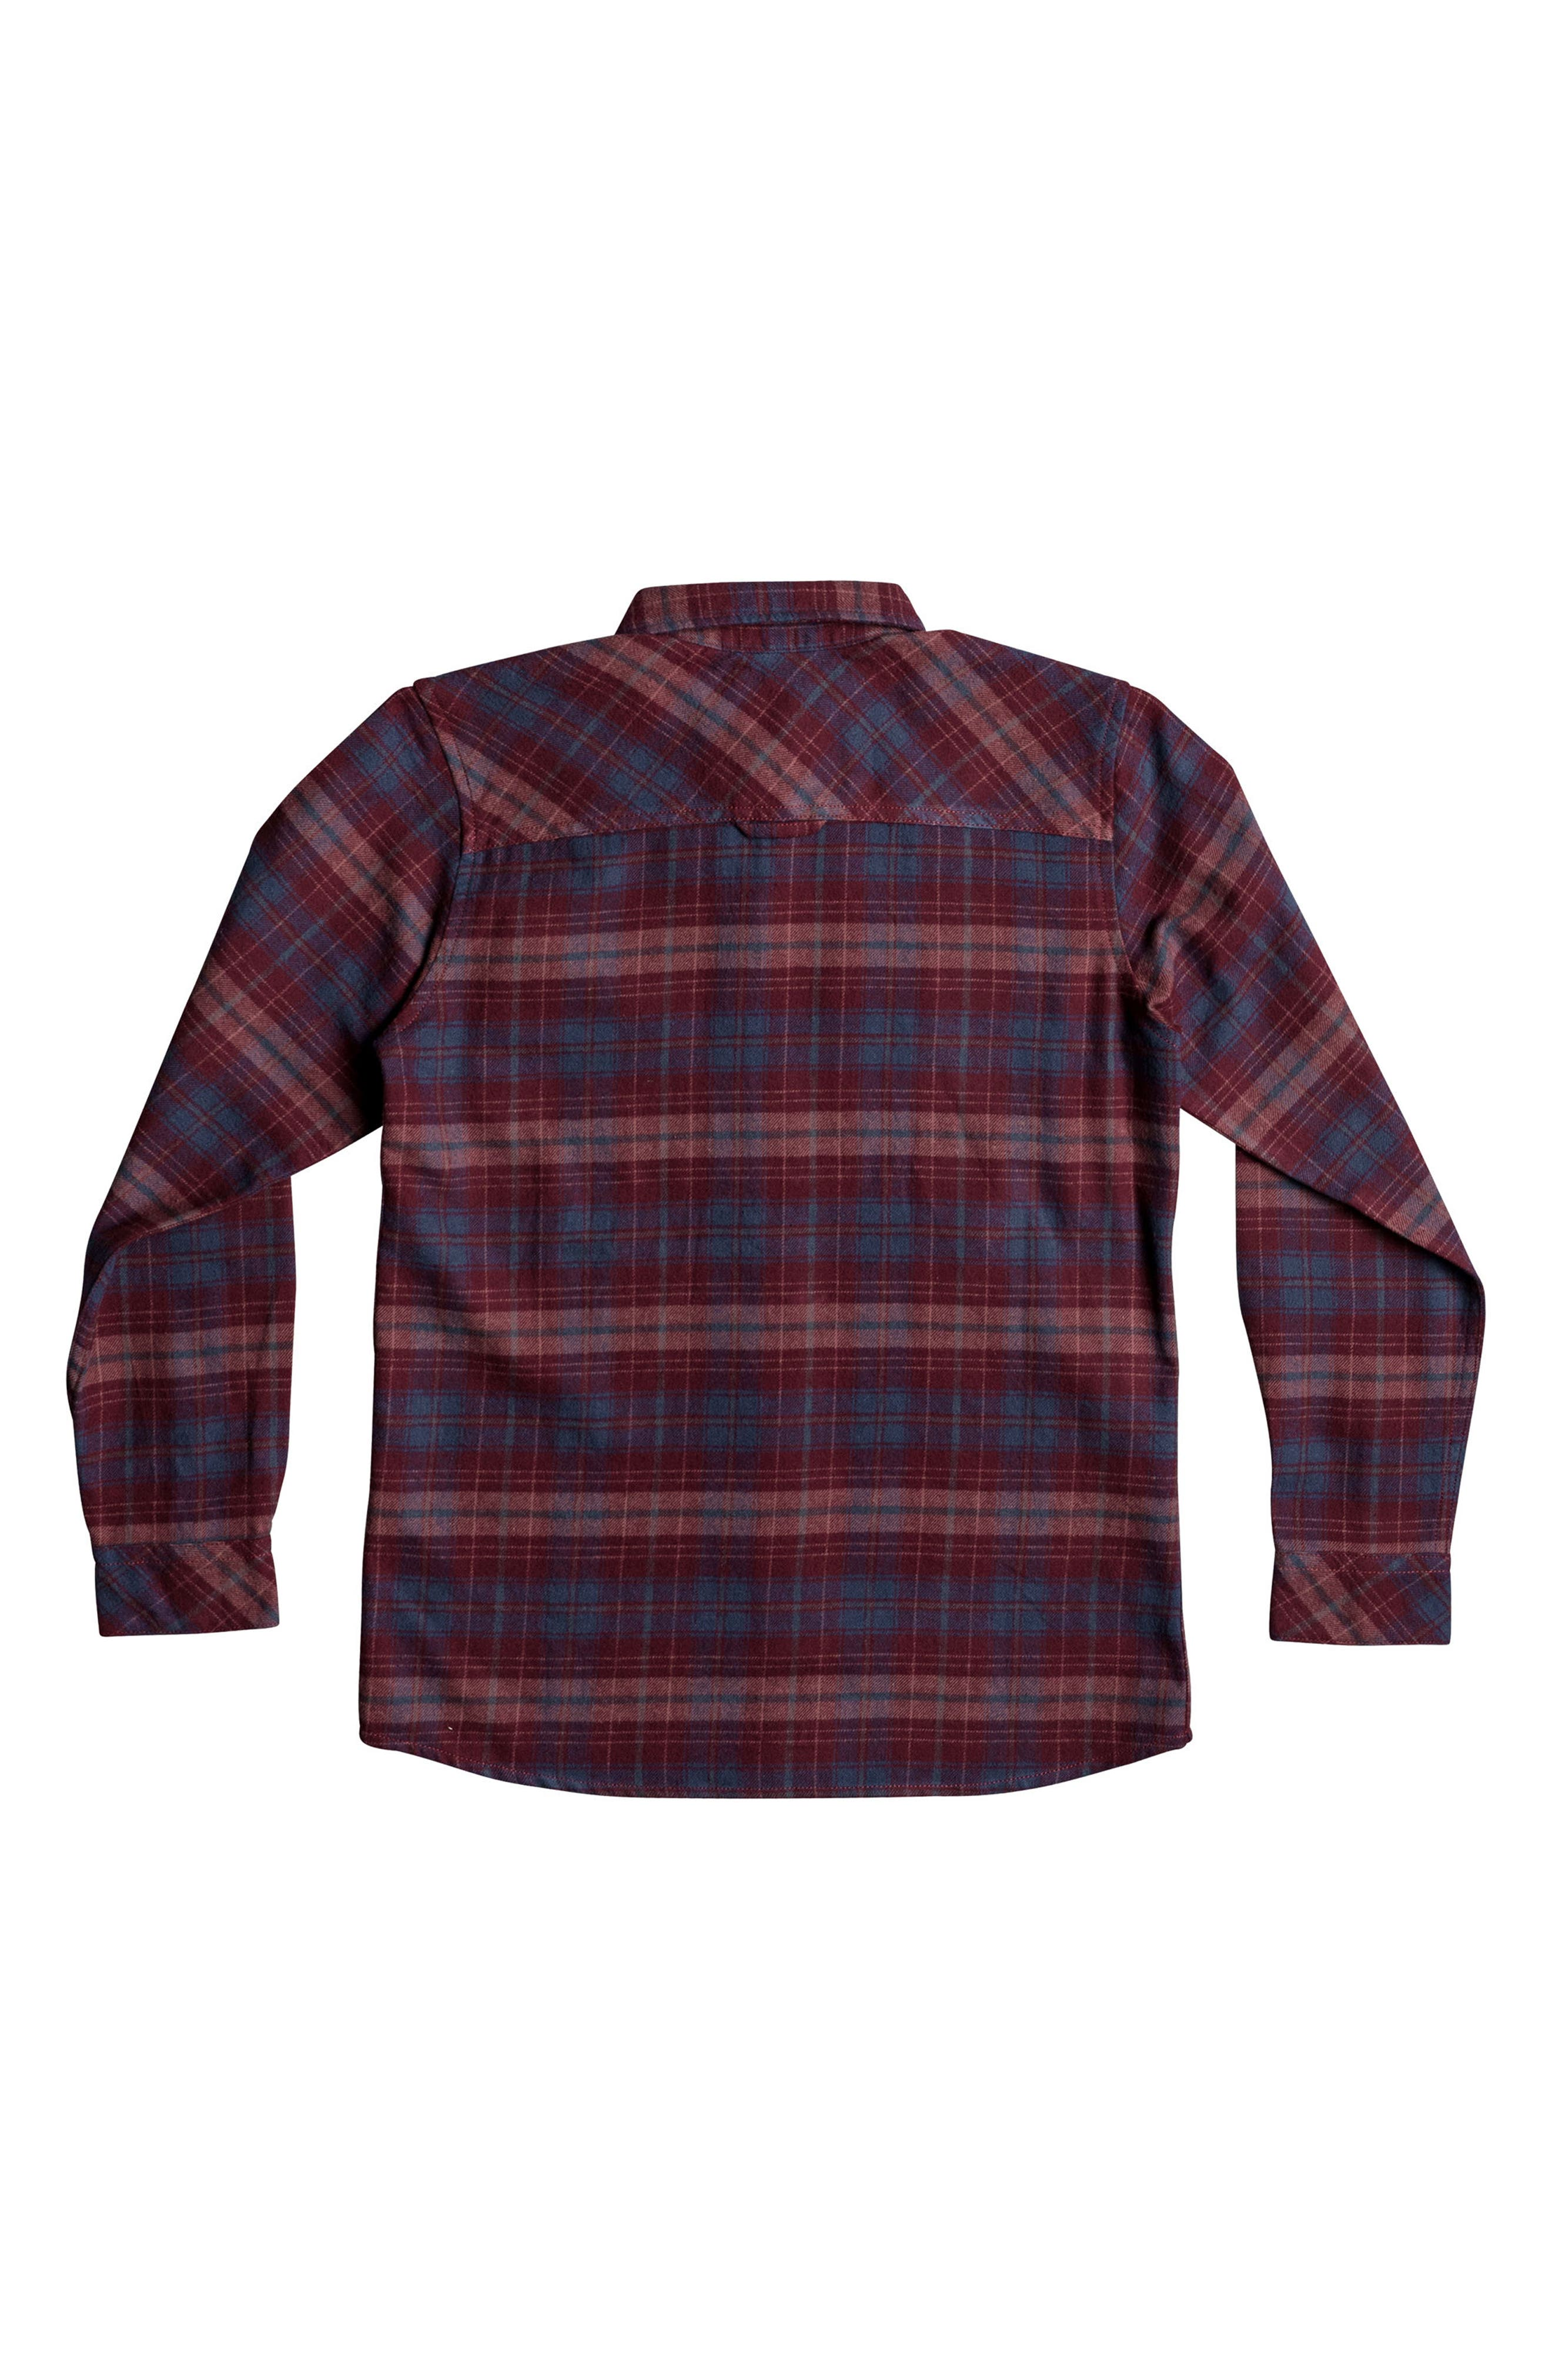 Fitzspeere Plaid Flannel Shirt,                             Alternate thumbnail 2, color,                             Winsdsor